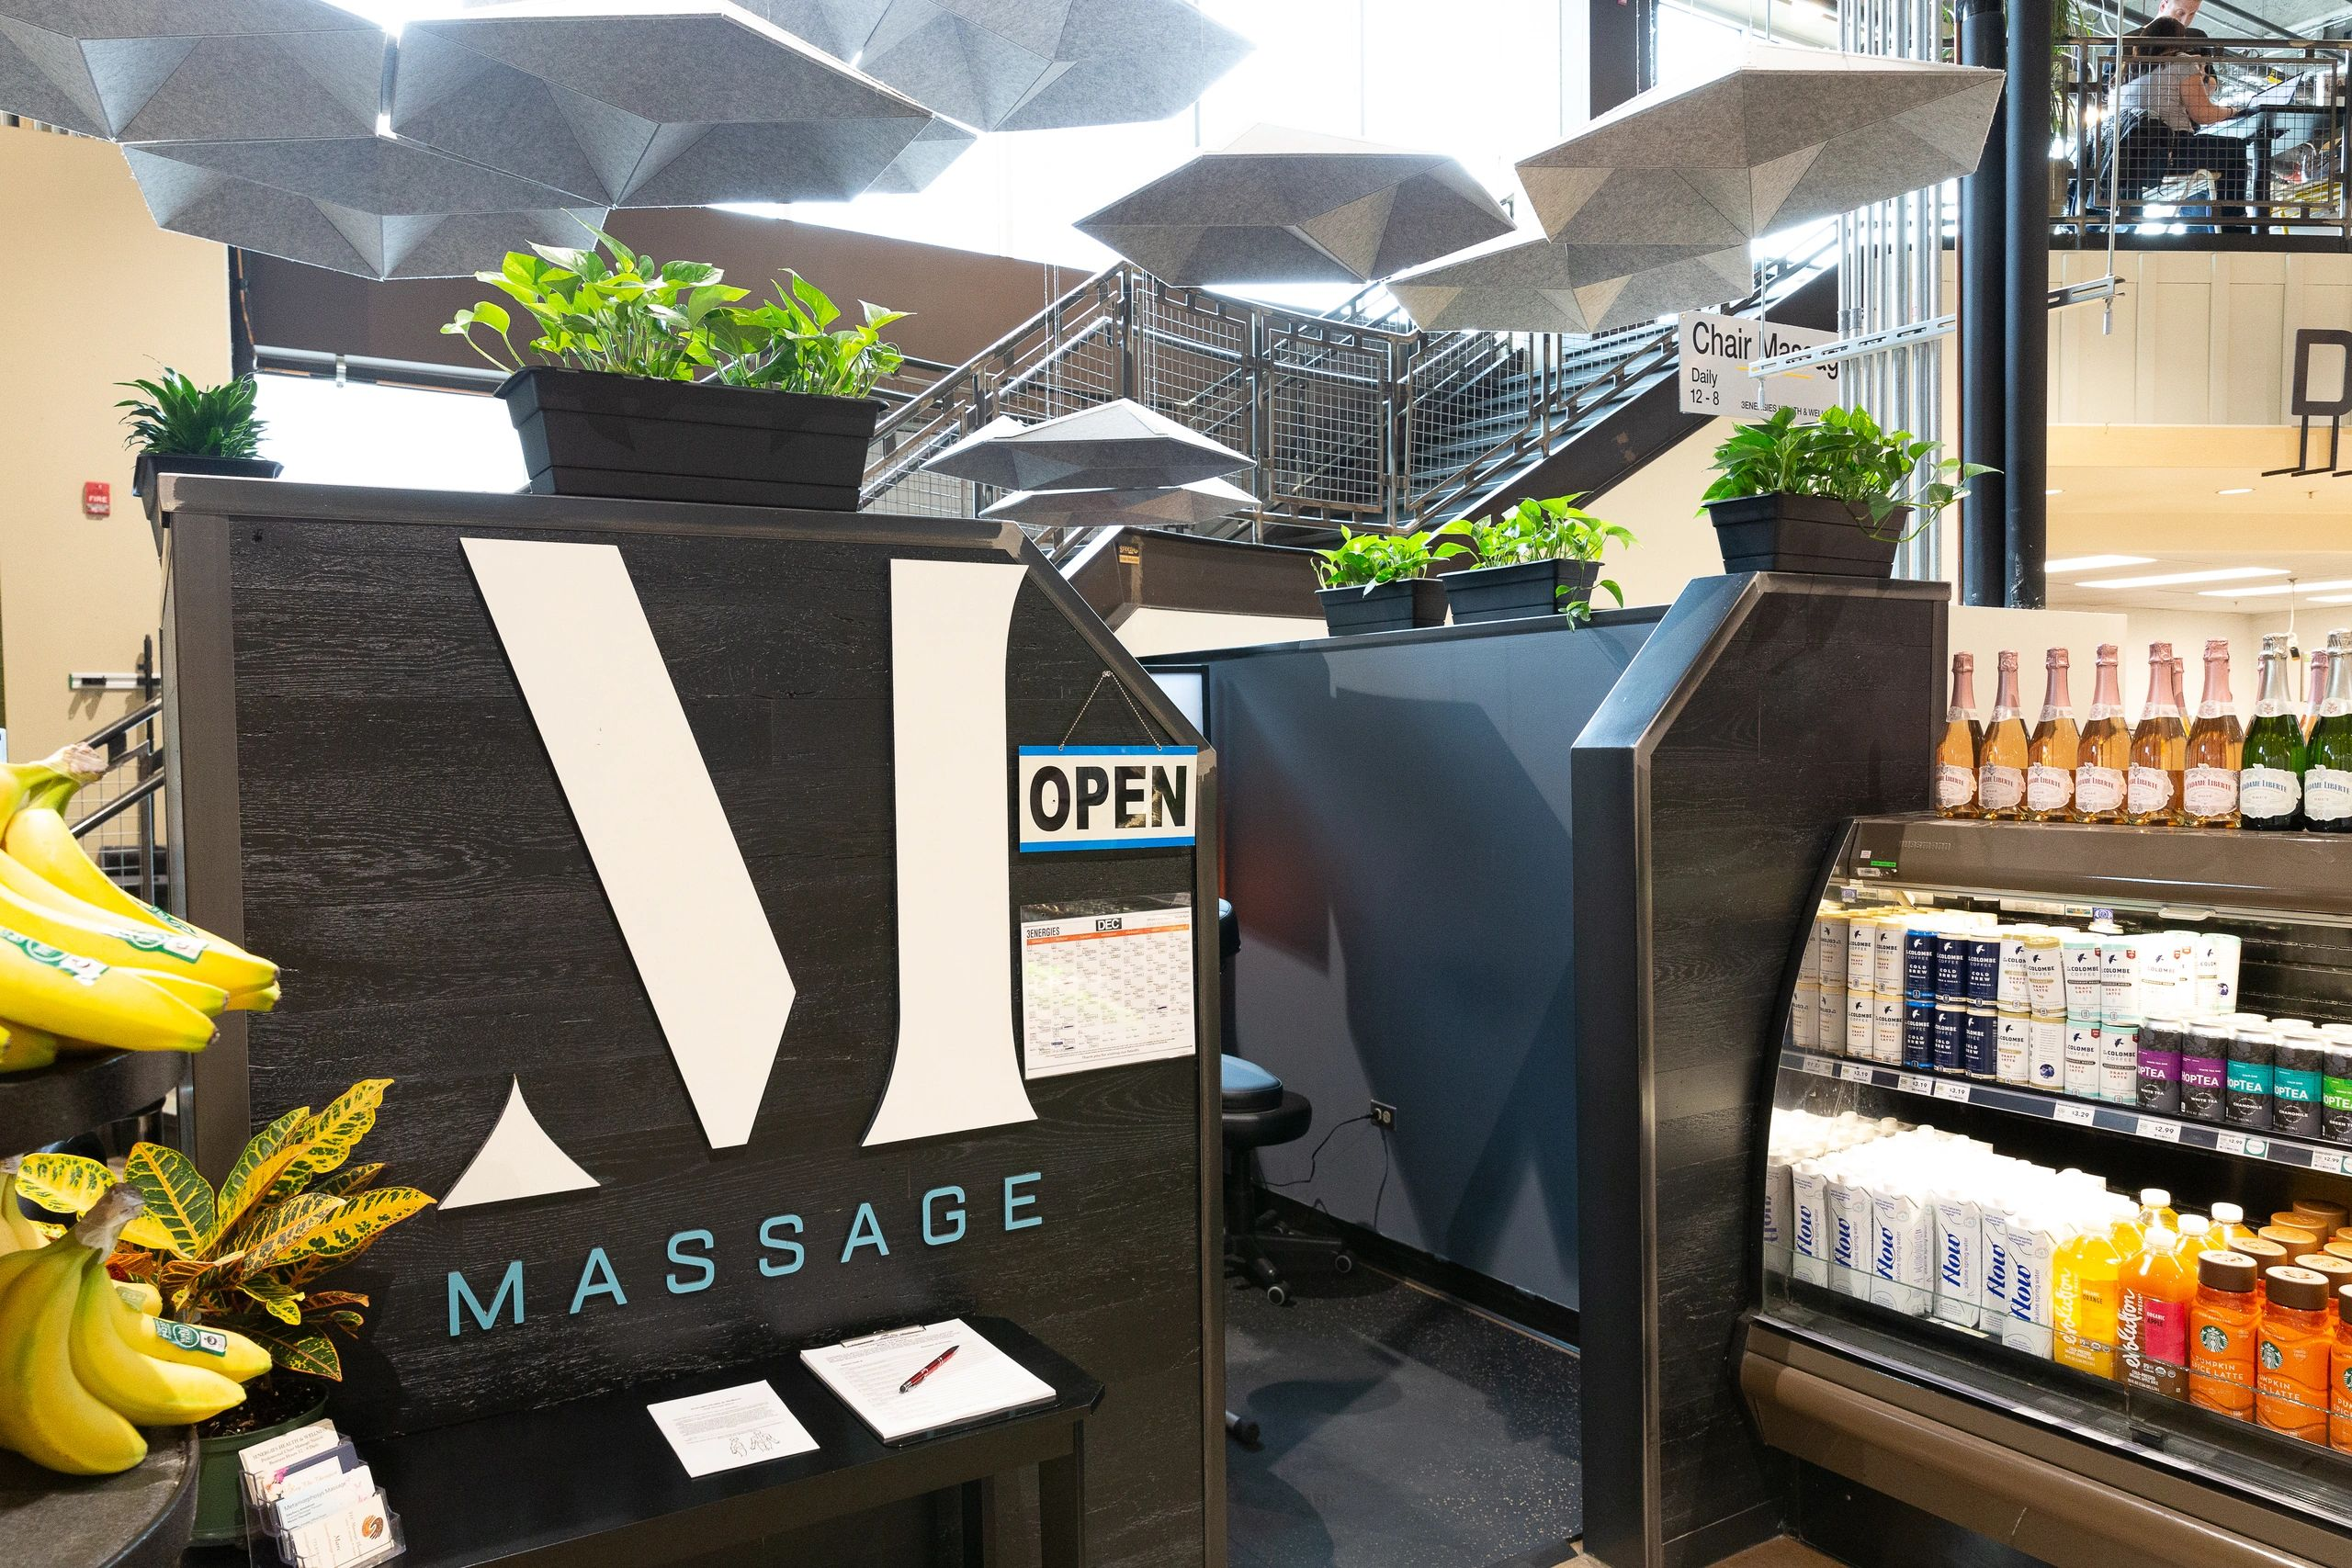 Whole Foods Market professional chair massage 3 Energies Health and Wellness Chicago